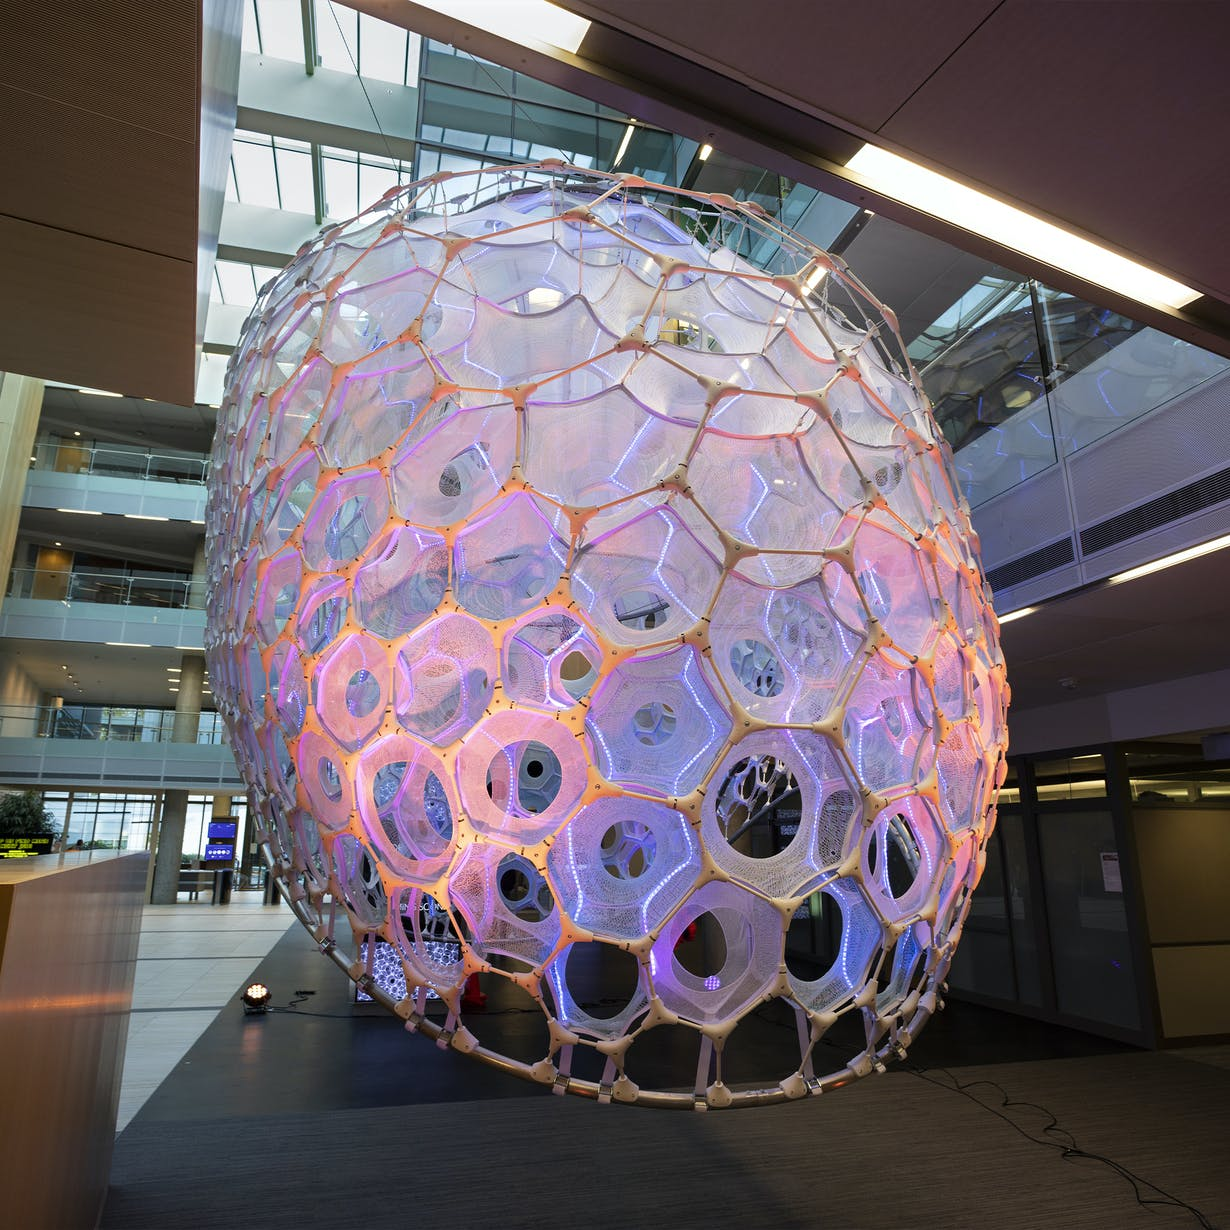 Ada – a structure inside Microsoft Research's building responds to its environment